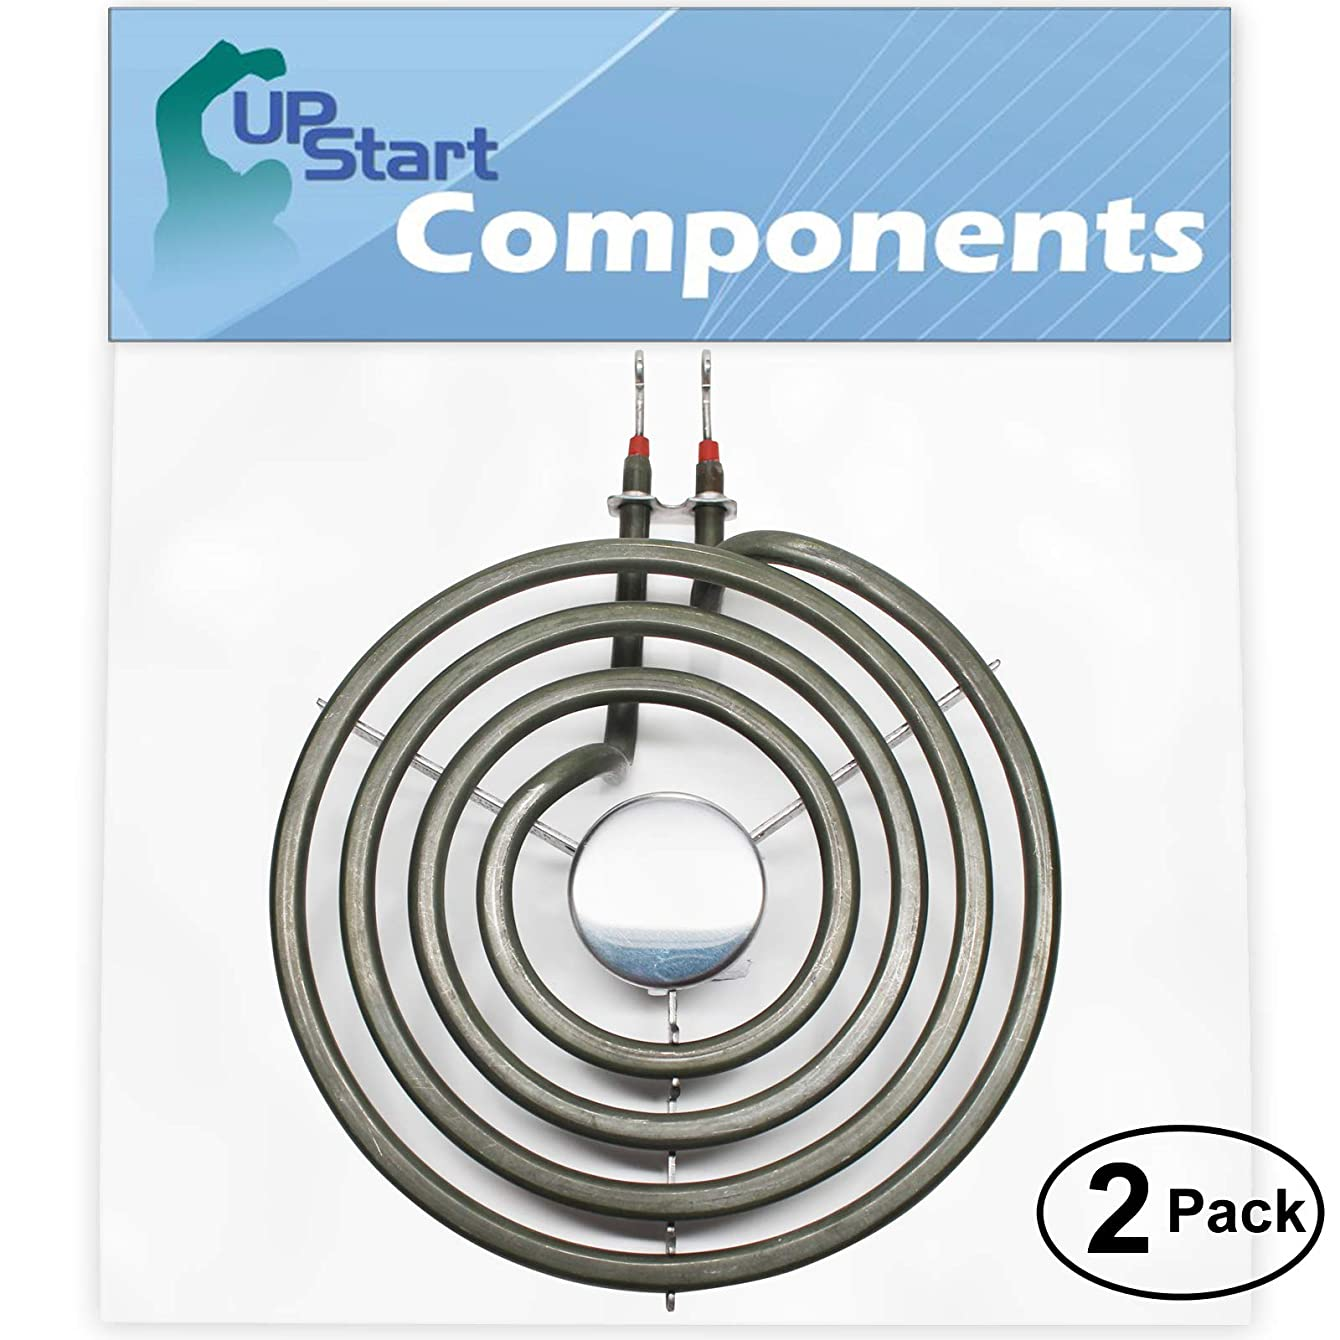 2-Pack Replacement Roper FEP310BW0 6 inch 4 Turns Surface Burner Element - Compatible Roper 660532 Heating Element for Range, Stove & Cooktop